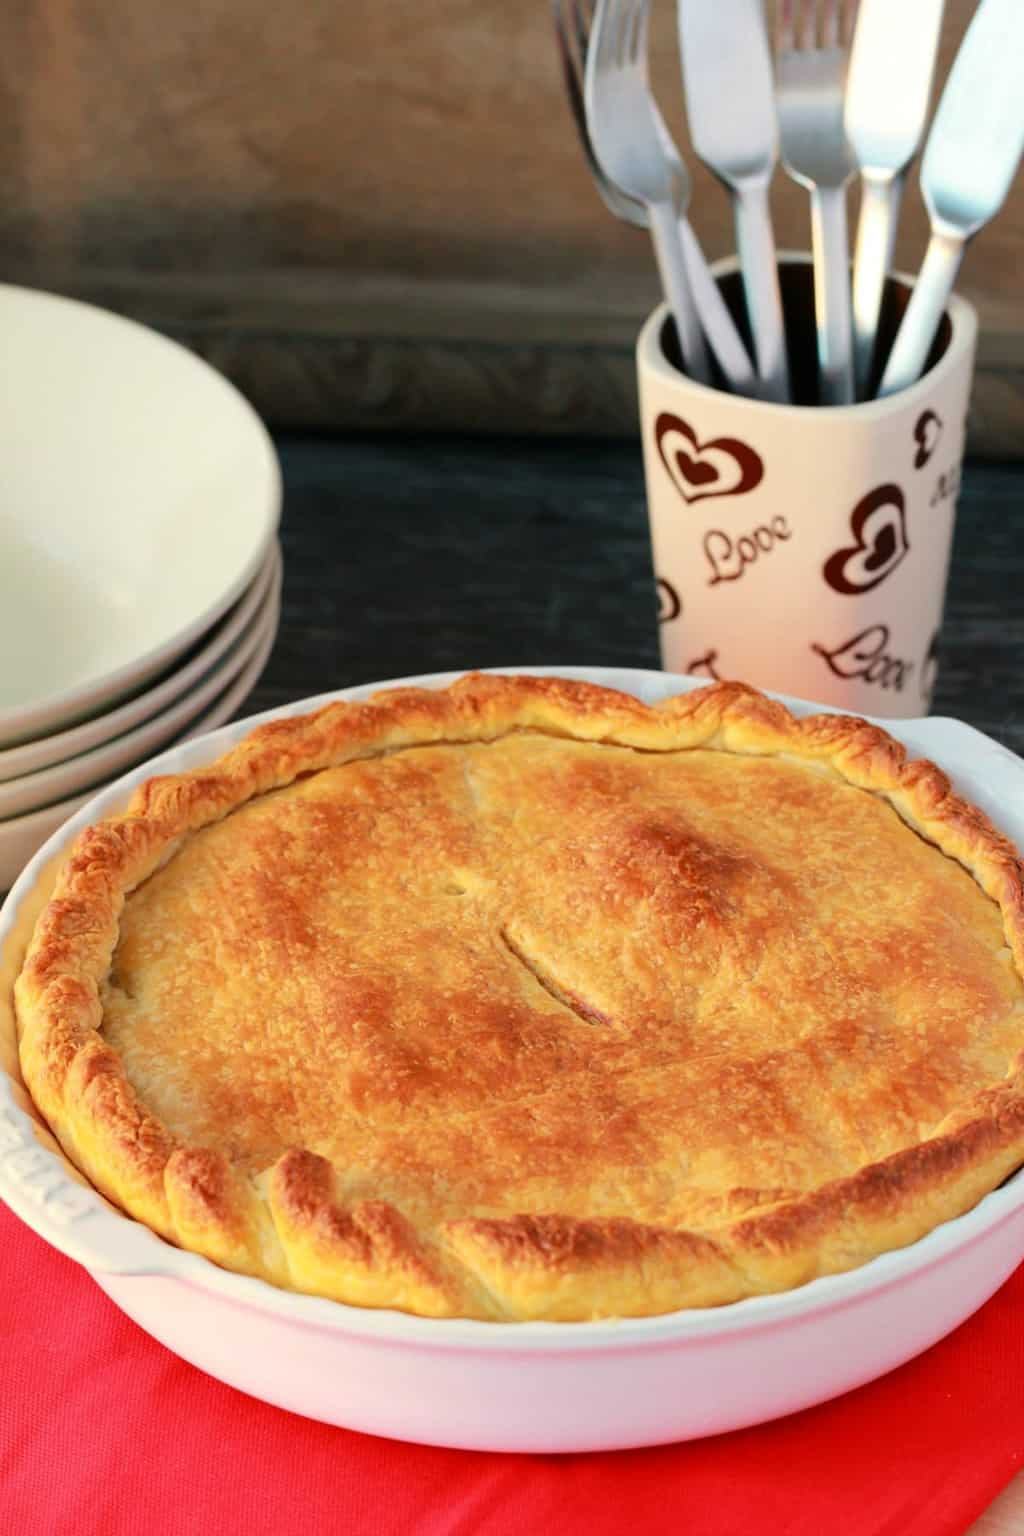 Freshly baked pot pie in a white pie dish.